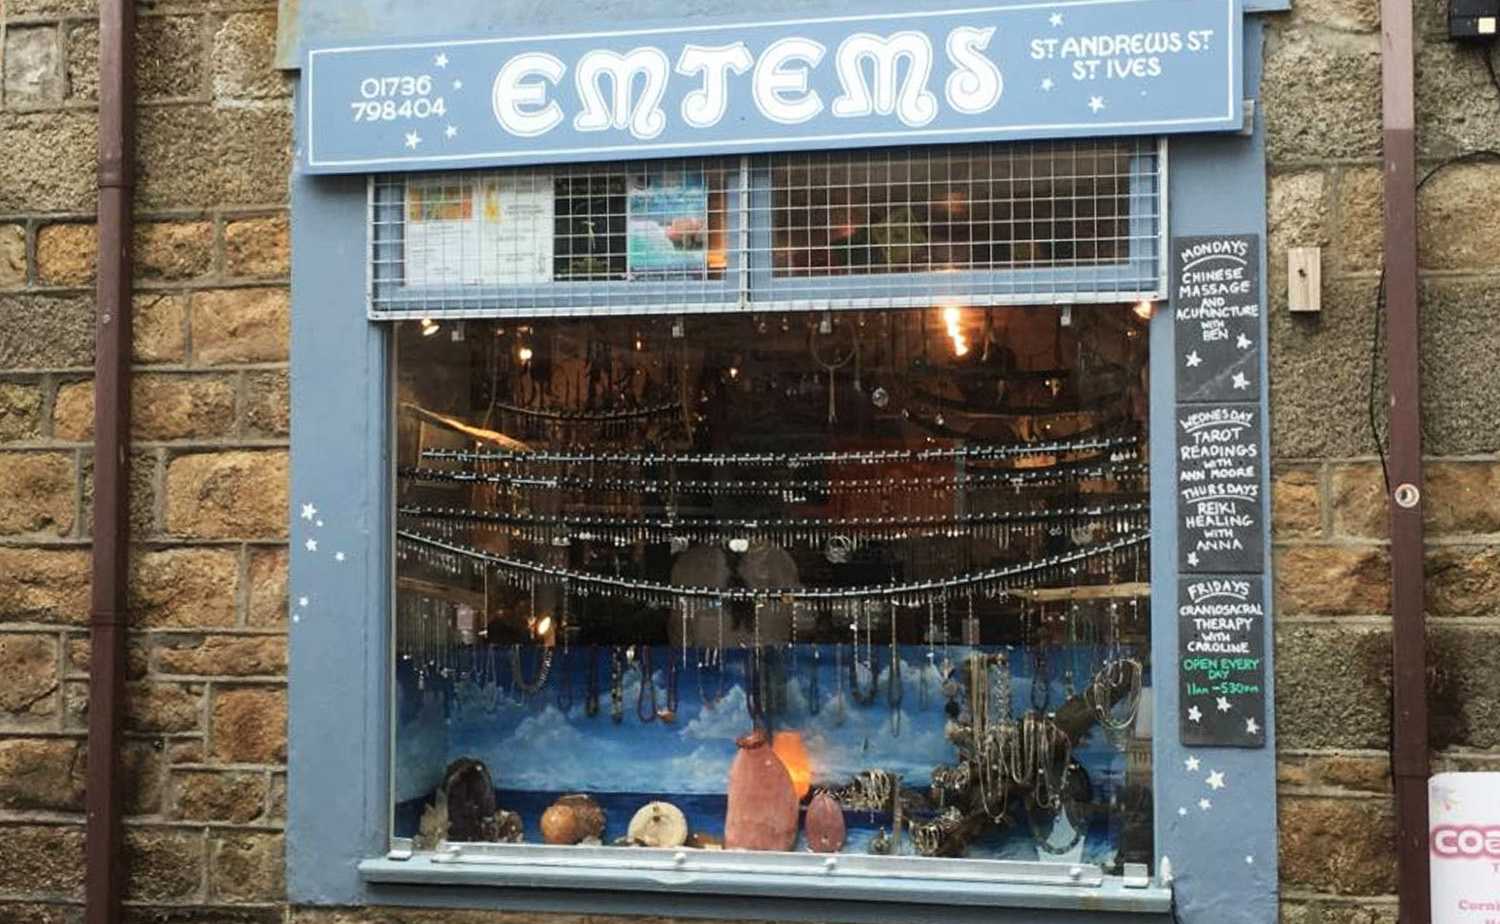 EMJEMS - A friendly , family run business established for over 35 years, selling silver and gemstone jewellery, crystals, fossils, rare and unusual gemstones, tarot cards, essential oils and much more. Card readings and Reiki are available by appointment.01736 798404